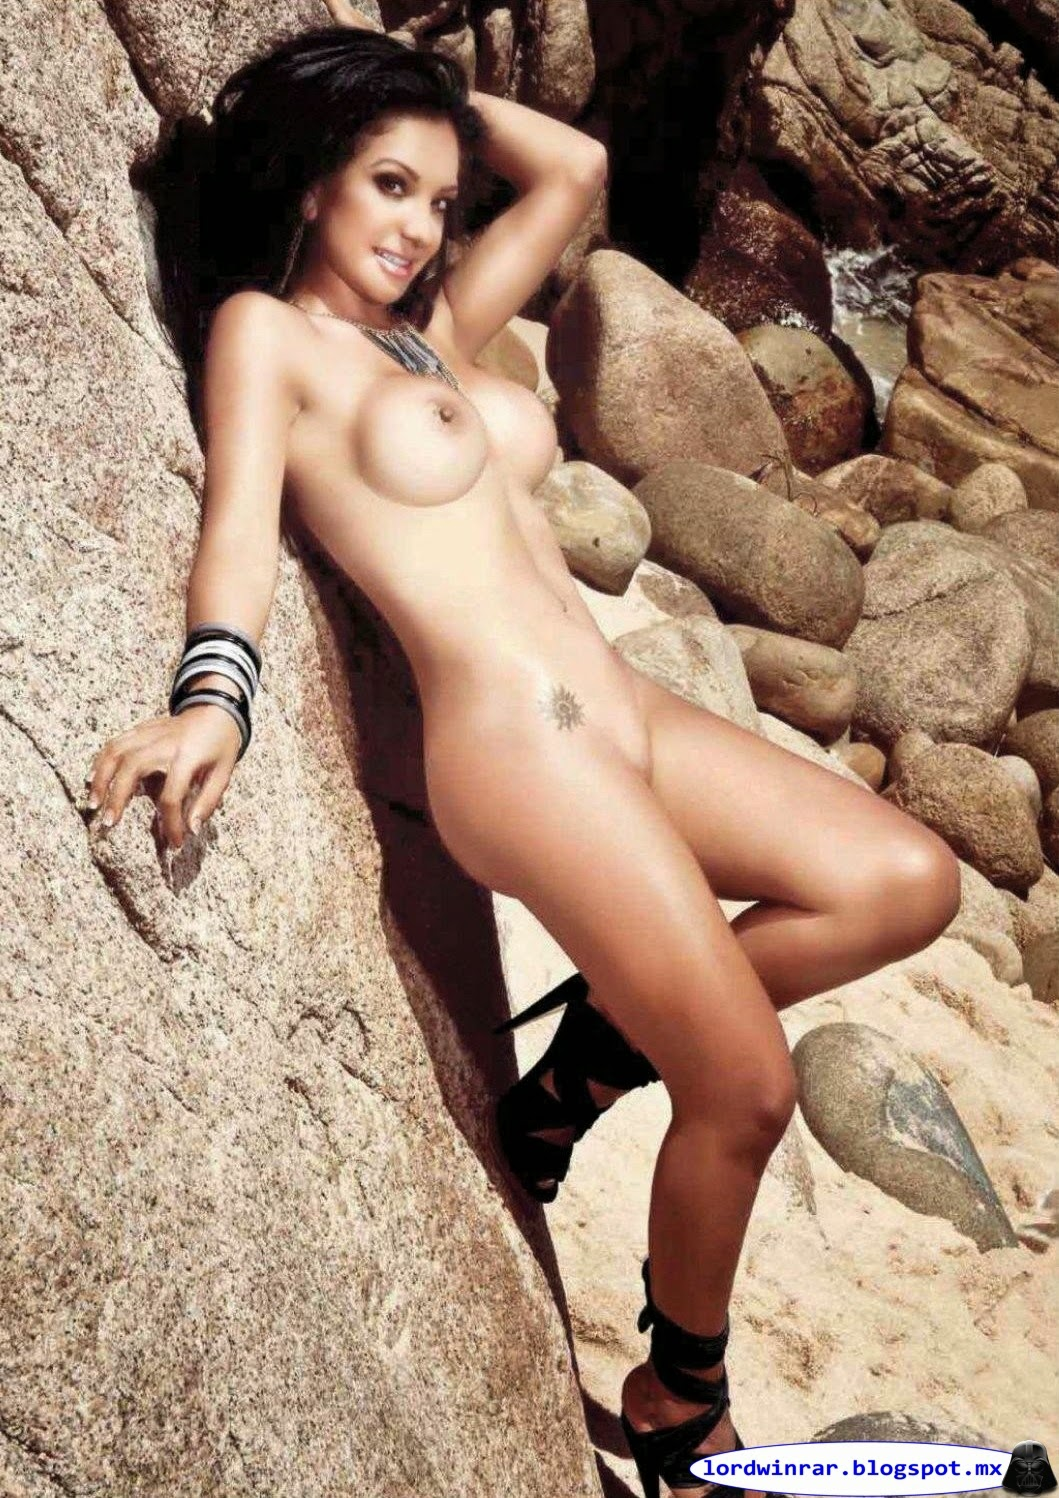 Wanders Lover - Playboy Mexico 2012 Septiembre (40 Fotos ...: http://lordwinrar.blogspot.com/2015/05/wanders-lover-playboy-mexico-2012.html